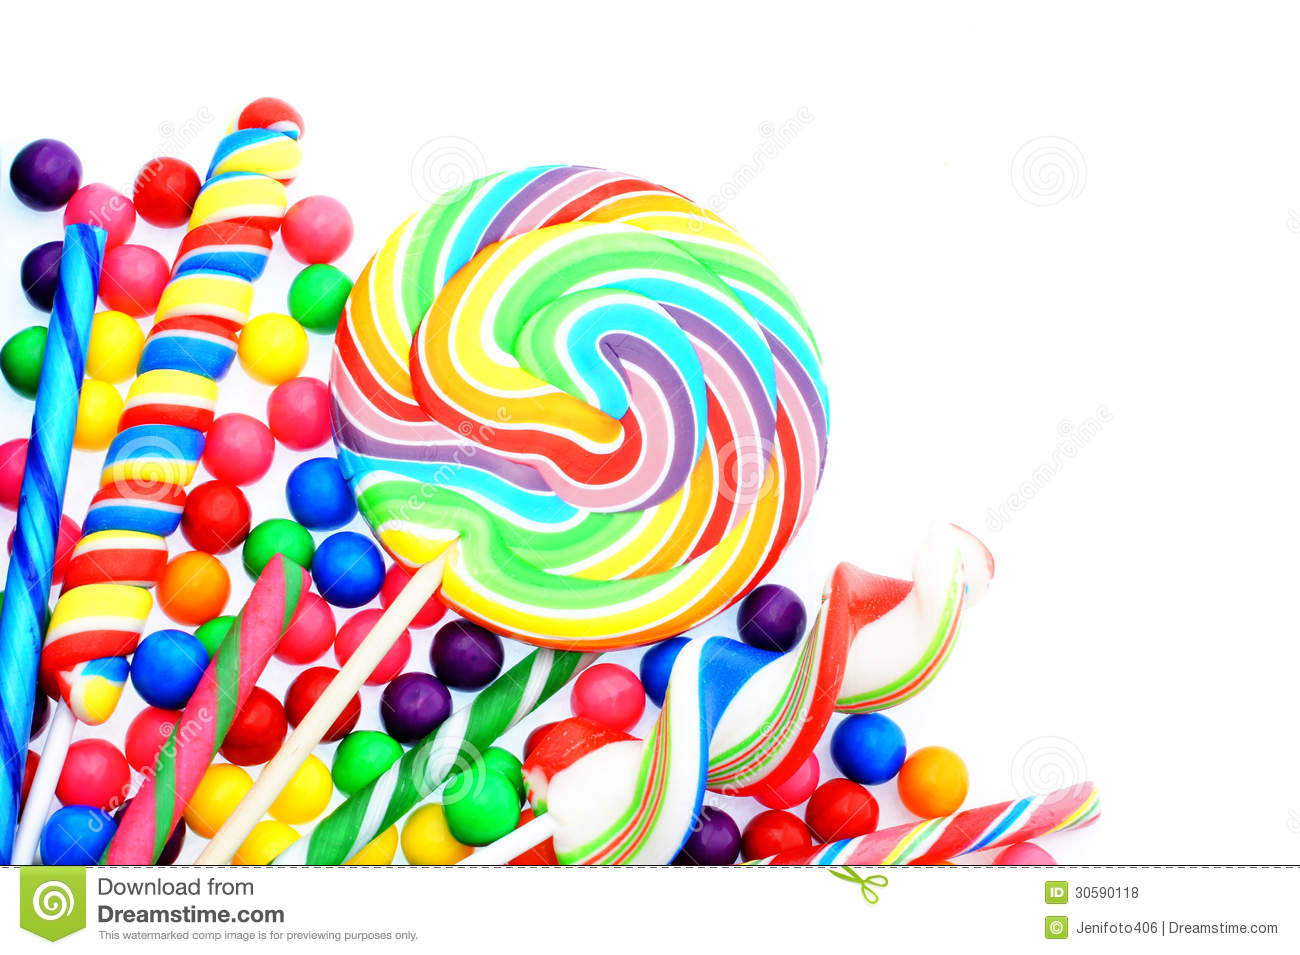 Colorful candy corner border with lollipops and gumballs.